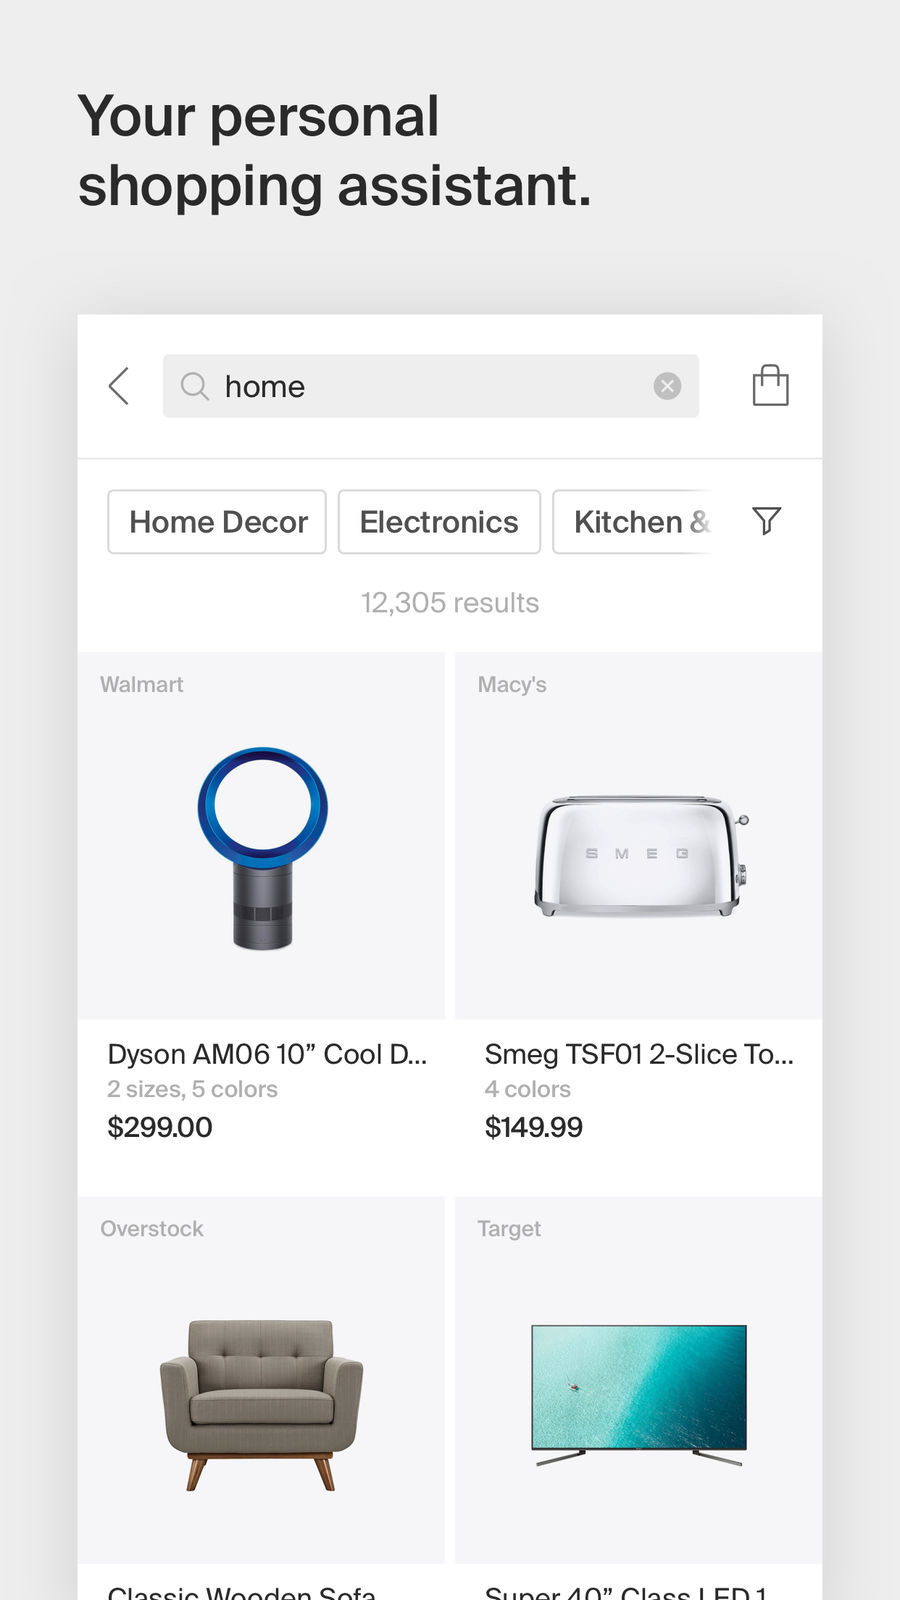 Example of Design for Shopping App , App Store Screenshot by Honey Smart Shopping Assistant